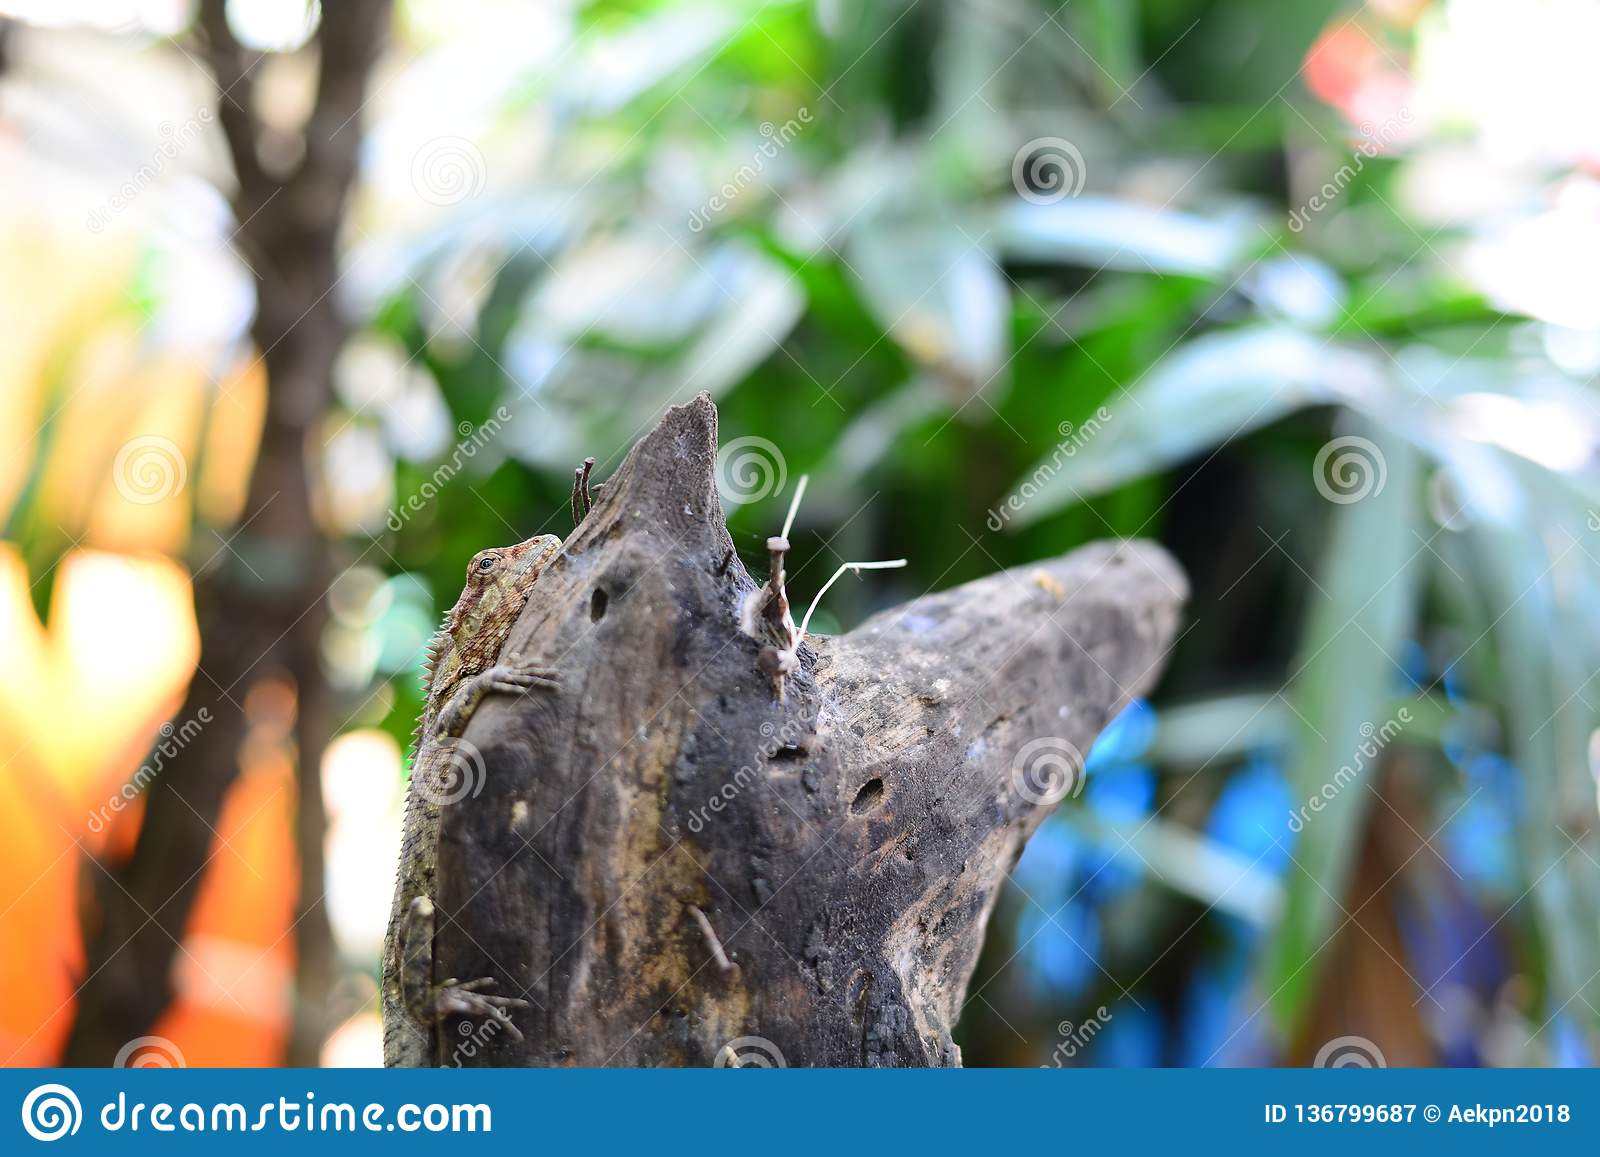 The Brown Chameleon resting on the wooden log